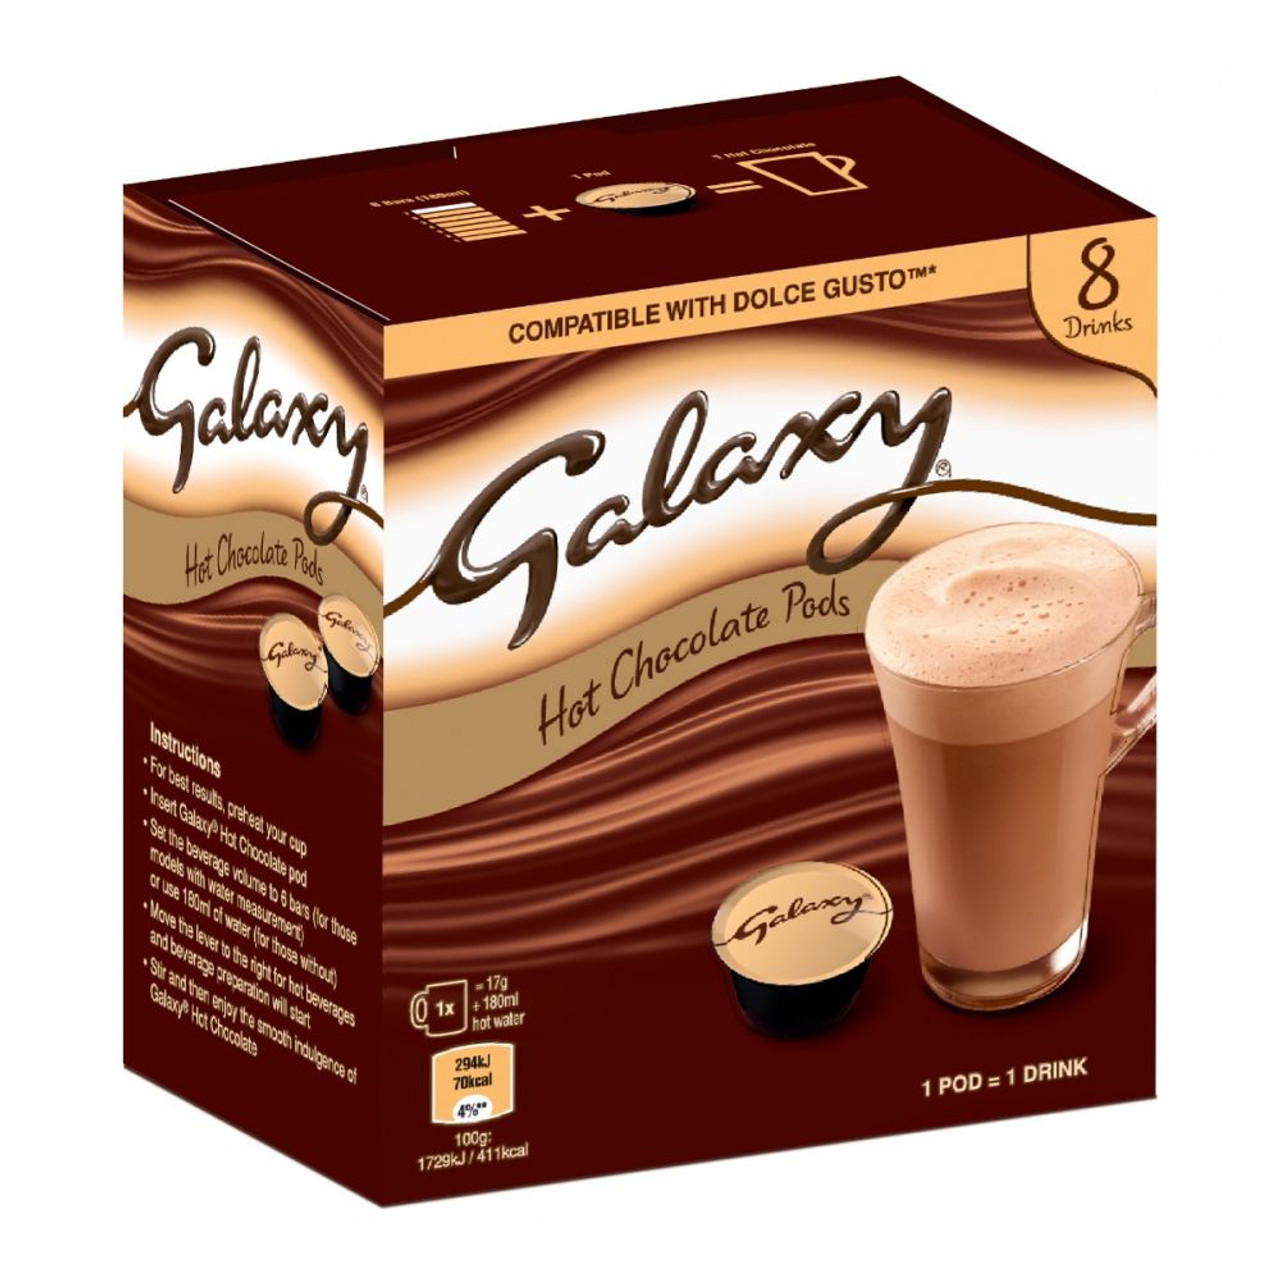 Galaxy 8 Hot Chocolate Pods Dolce Gusto Compatible 8x17g